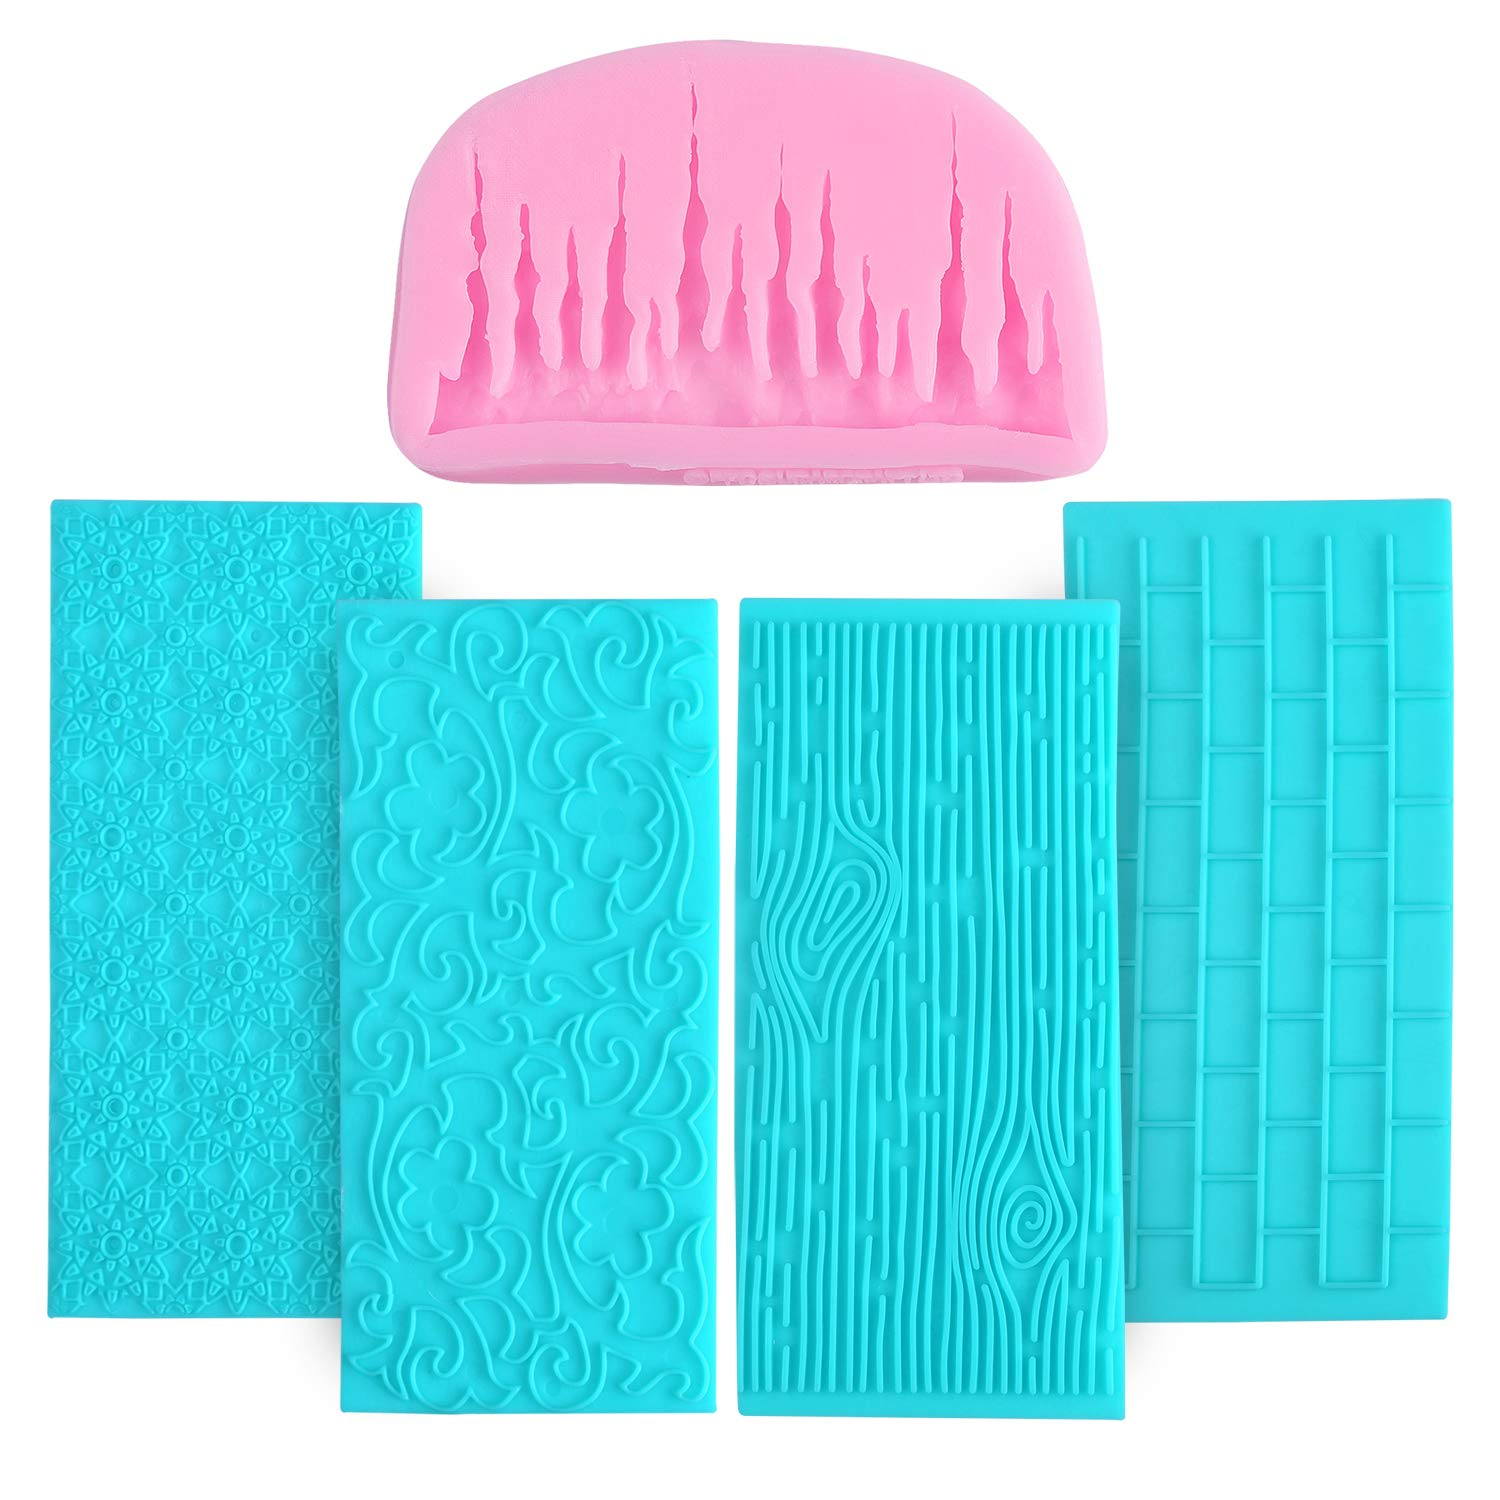 Fondant Impression Mat,3D Ice Shape Cake Fondant Molds with Texture Mold Set